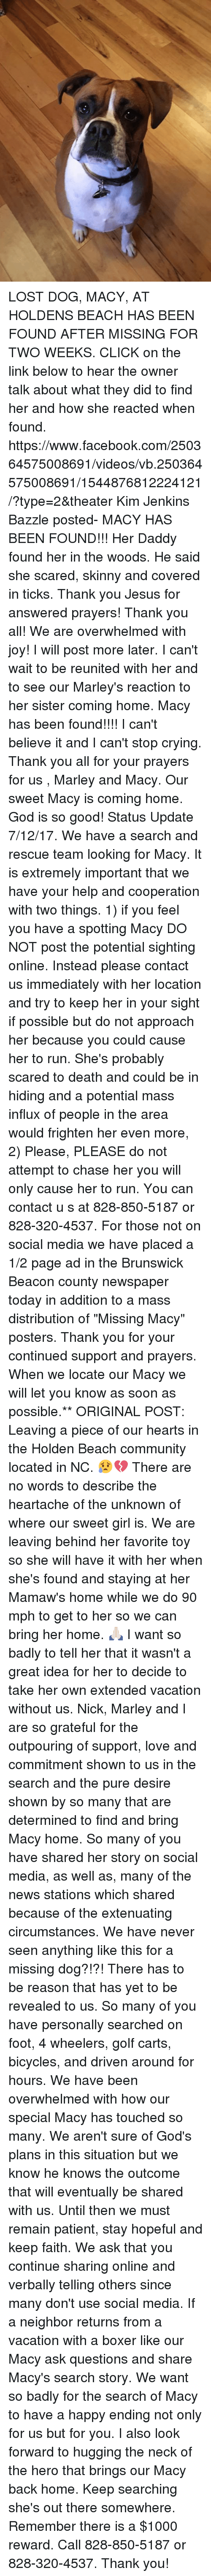 """answered prayers: LOST DOG, MACY, AT HOLDENS BEACH HAS BEEN FOUND AFTER MISSING FOR TWO WEEKS.   CLICK on the link below to hear the owner talk about what they did to find her and how she reacted when found.     https://www.facebook.com/250364575008691/videos/vb.250364575008691/1544876812224121/?type=2&theater   Kim Jenkins Bazzle posted- MACY HAS BEEN FOUND!!! Her Daddy found her in the woods. He said she scared, skinny and covered in ticks. Thank you Jesus for answered prayers! Thank you all! We are overwhelmed with joy! I will post more later. I can't wait to be reunited with her and to see our Marley's reaction to her sister coming home. Macy has been found!!!! I can't believe it and I can't stop crying. Thank you all for your prayers for us , Marley and Macy. Our sweet Macy is coming home. God is so good!  Status Update 7/12/17. We have a search and rescue team looking for Macy. It is extremely important that we have your help and cooperation with two things. 1) if you feel you have a spotting Macy DO NOT post the potential sighting online. Instead please contact us immediately with her location and try to keep her in your sight if possible but do not approach her because you could cause her to run. She's probably scared to death and could be in hiding and a potential mass influx of people in the area would frighten her even more, 2) Please, PLEASE do not attempt to chase her you will only cause her to run. You can contact u s at 828-850-5187 or 828-320-4537.  For those not on social media we have placed a 1/2 page ad in the Brunswick Beacon county newspaper today in addition to a mass distribution of """"Missing Macy"""" posters. Thank you for your continued support and prayers. When we locate our Macy we will let you know as soon as possible.**  ORIGINAL POST: Leaving a piece of our hearts in the Holden Beach community located in NC. 😥💔  There are no words to describe the heartache of the unknown of where our sweet girl is. We are leaving behind her favorite toy so"""